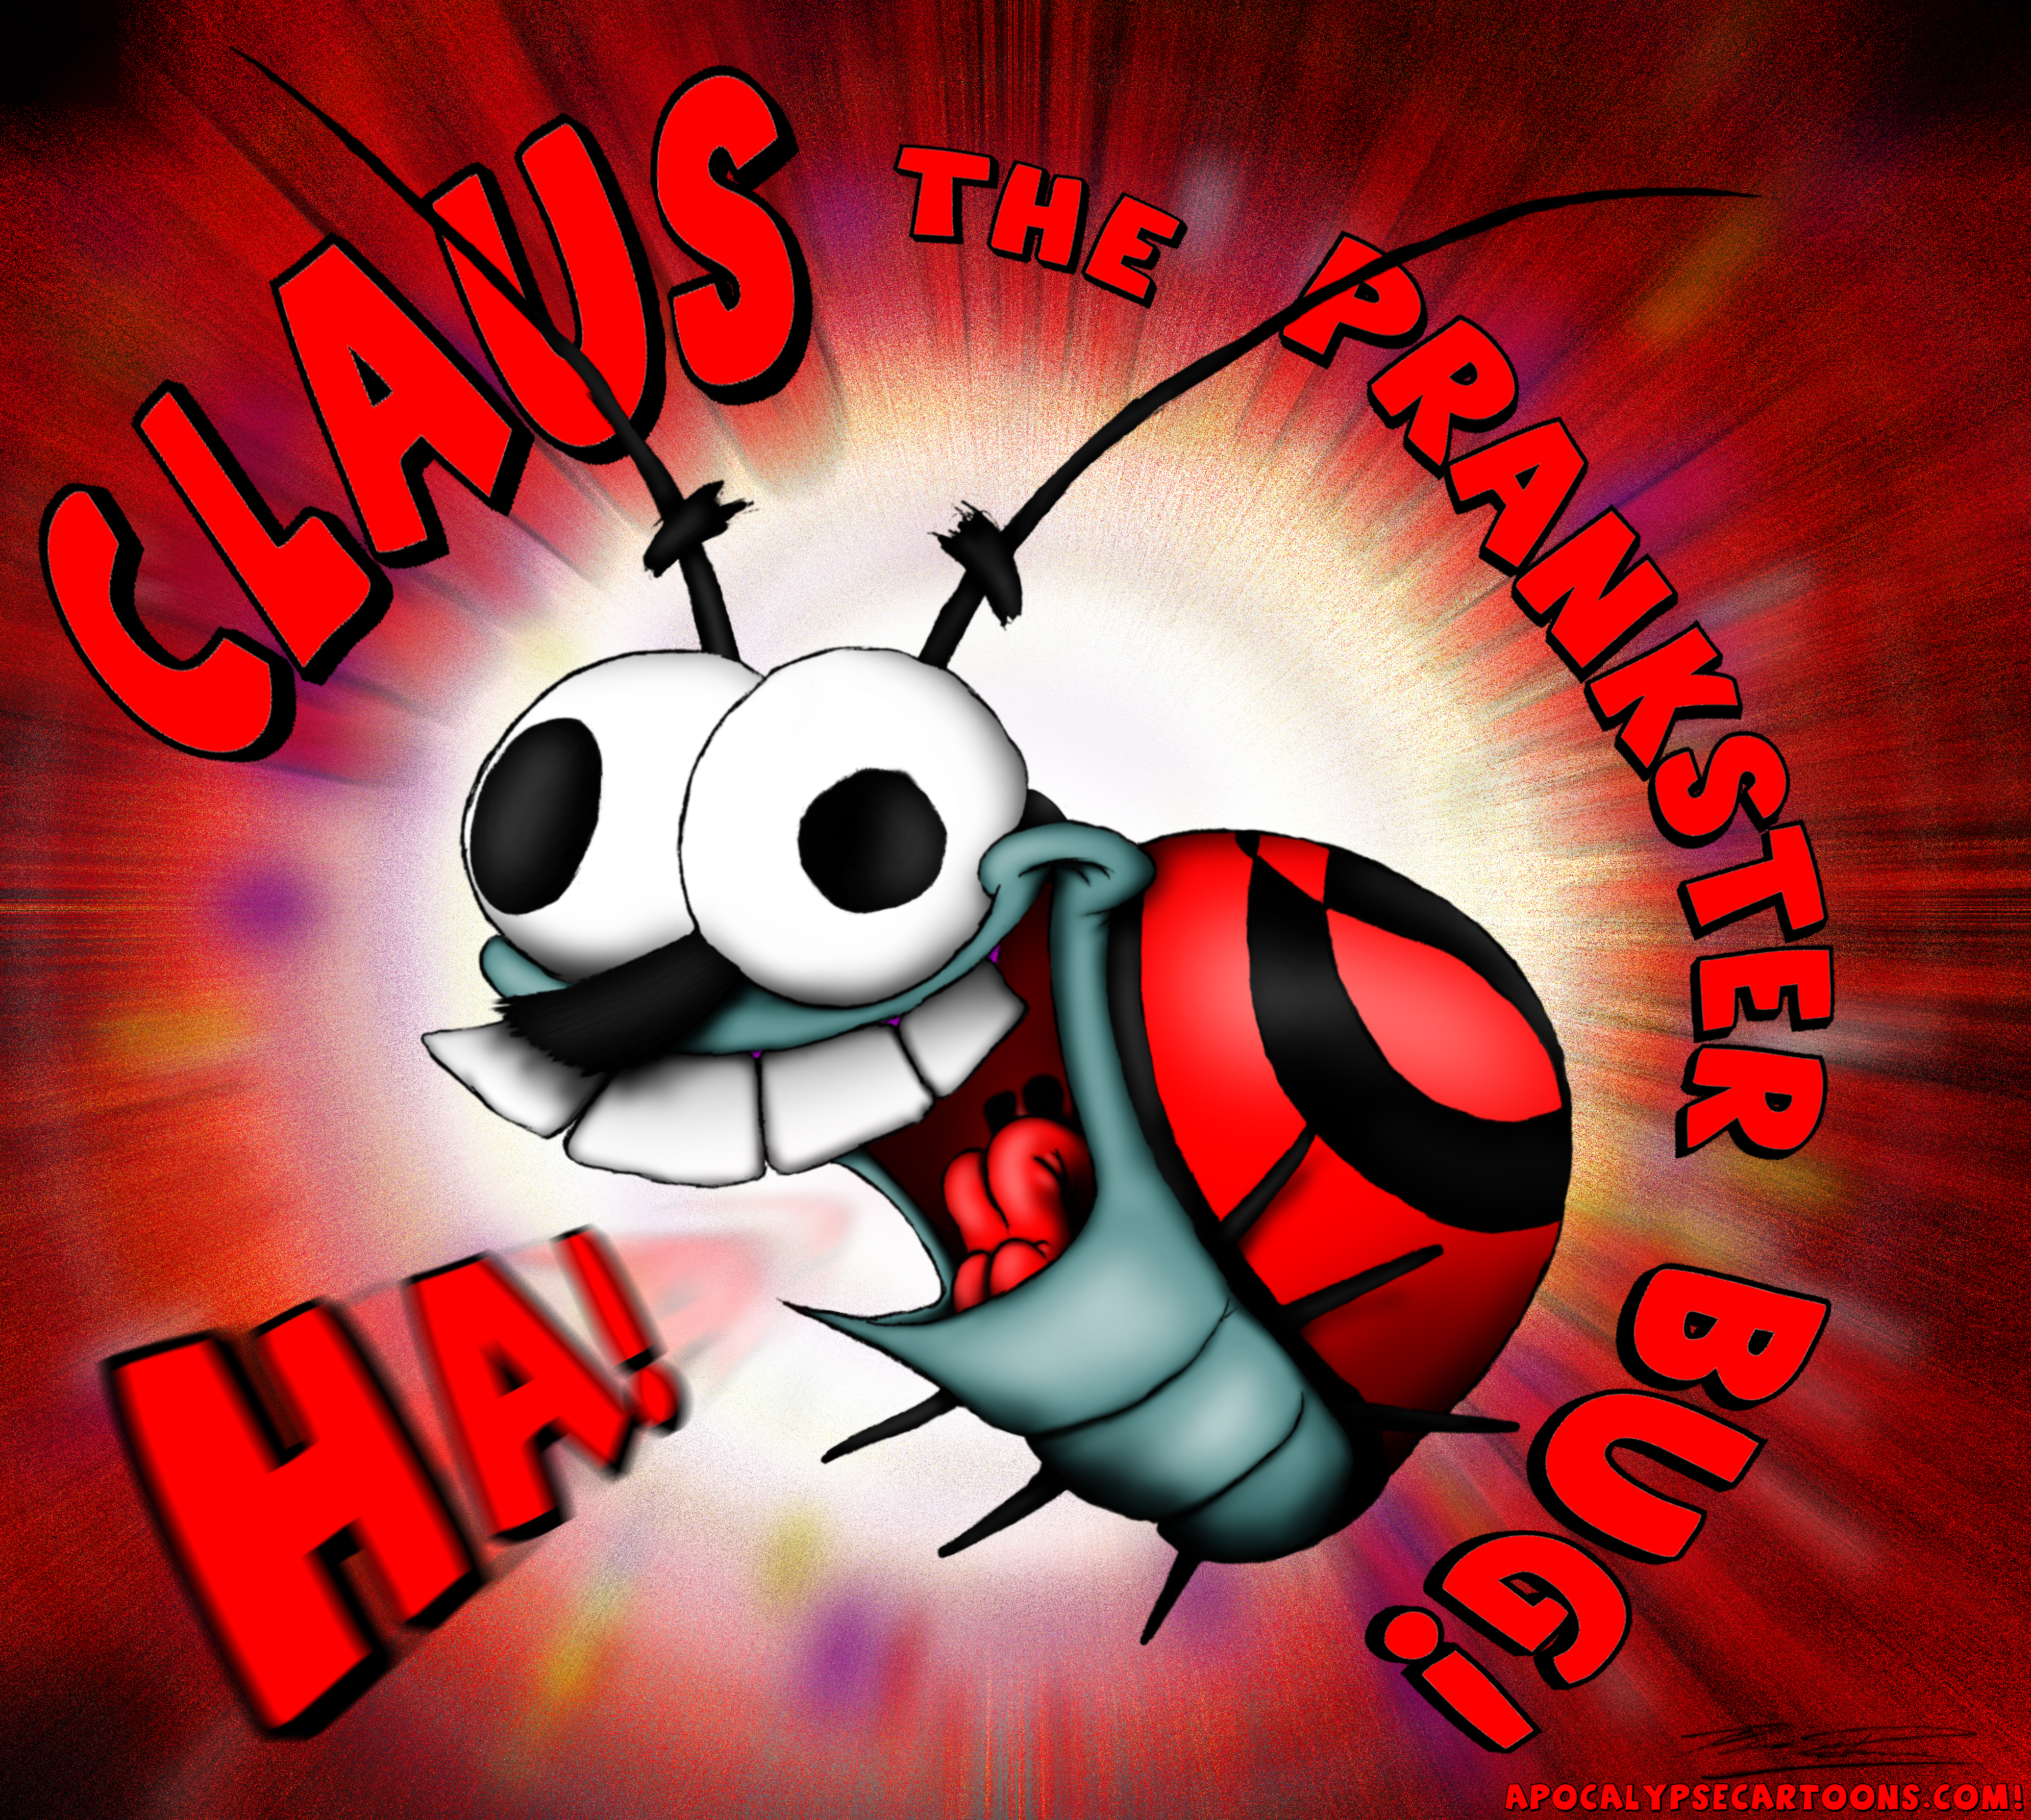 Claus the Prankster Bug!